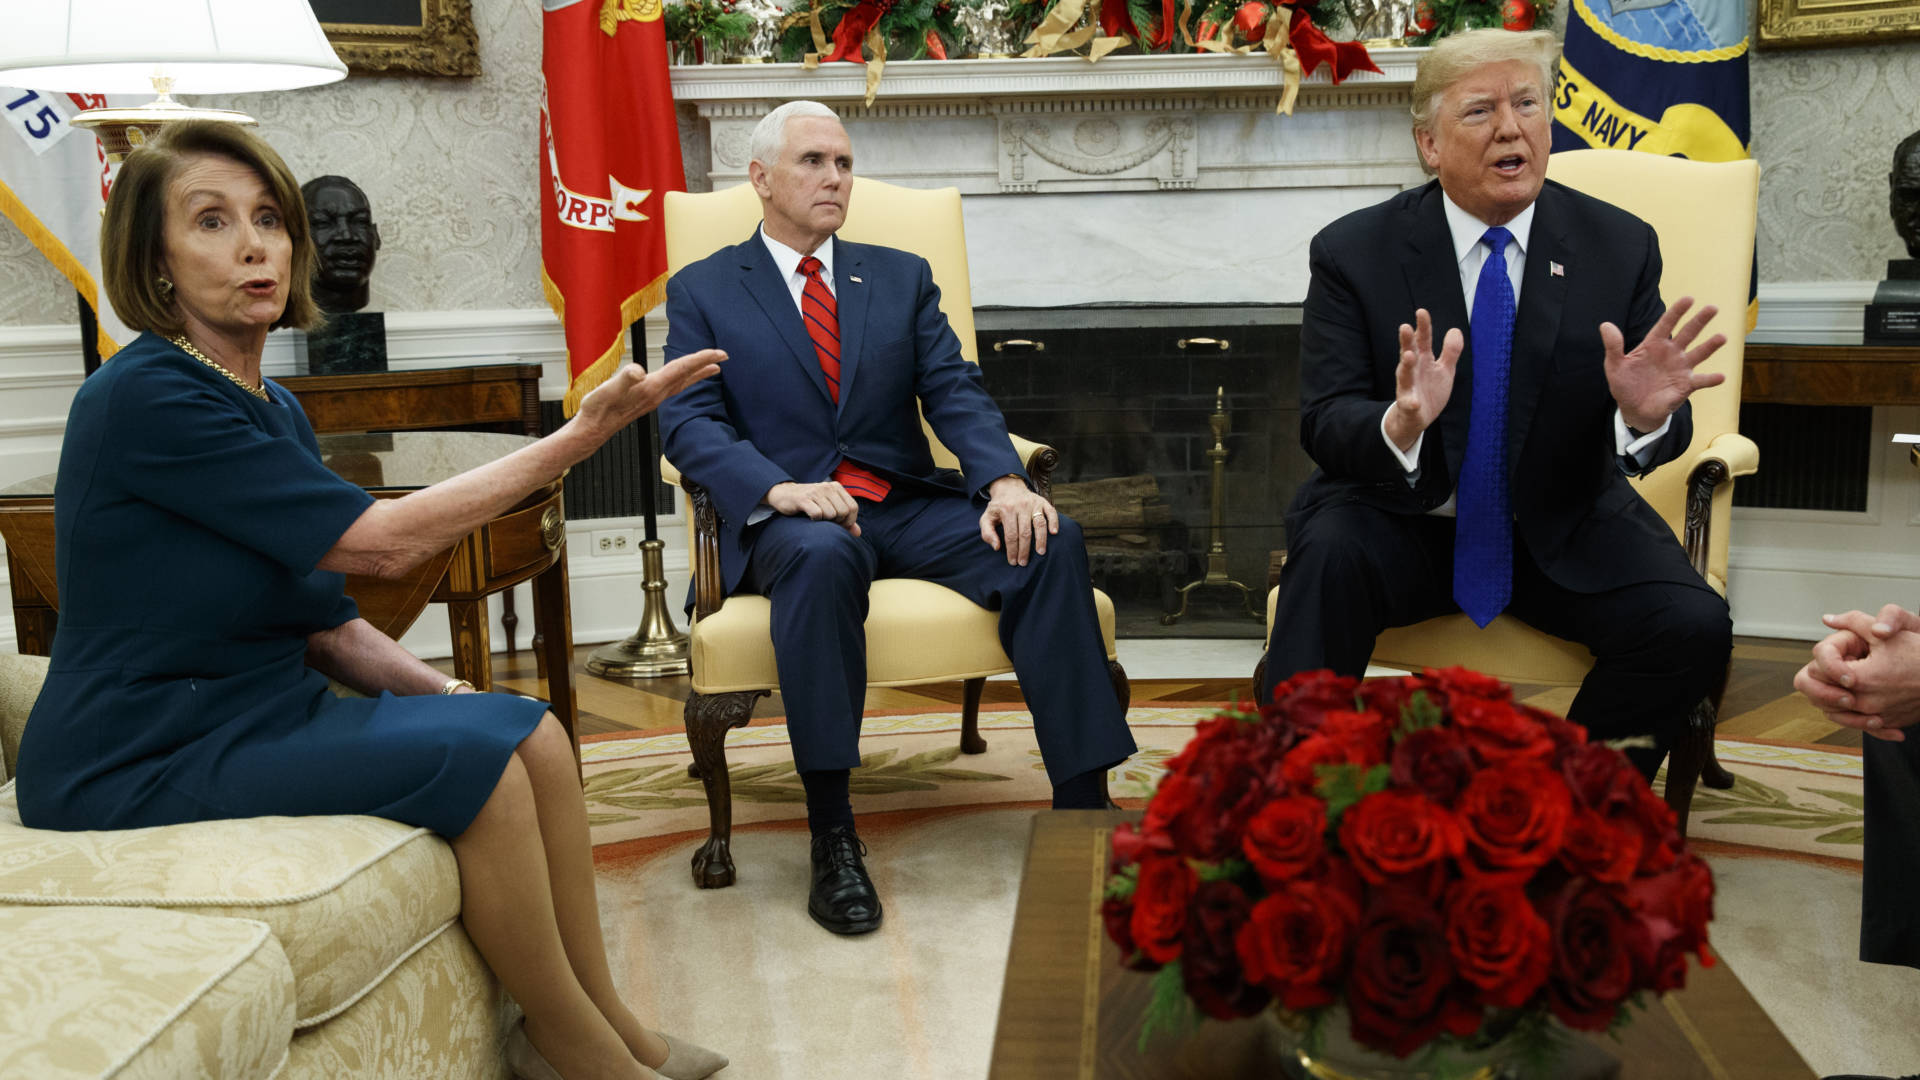 Vice President Mike Pence, looks on as now-House Speaker Nancy Pelosi argues with President Trump during a meeting in the Oval Office last month. Evan Vucci/AP